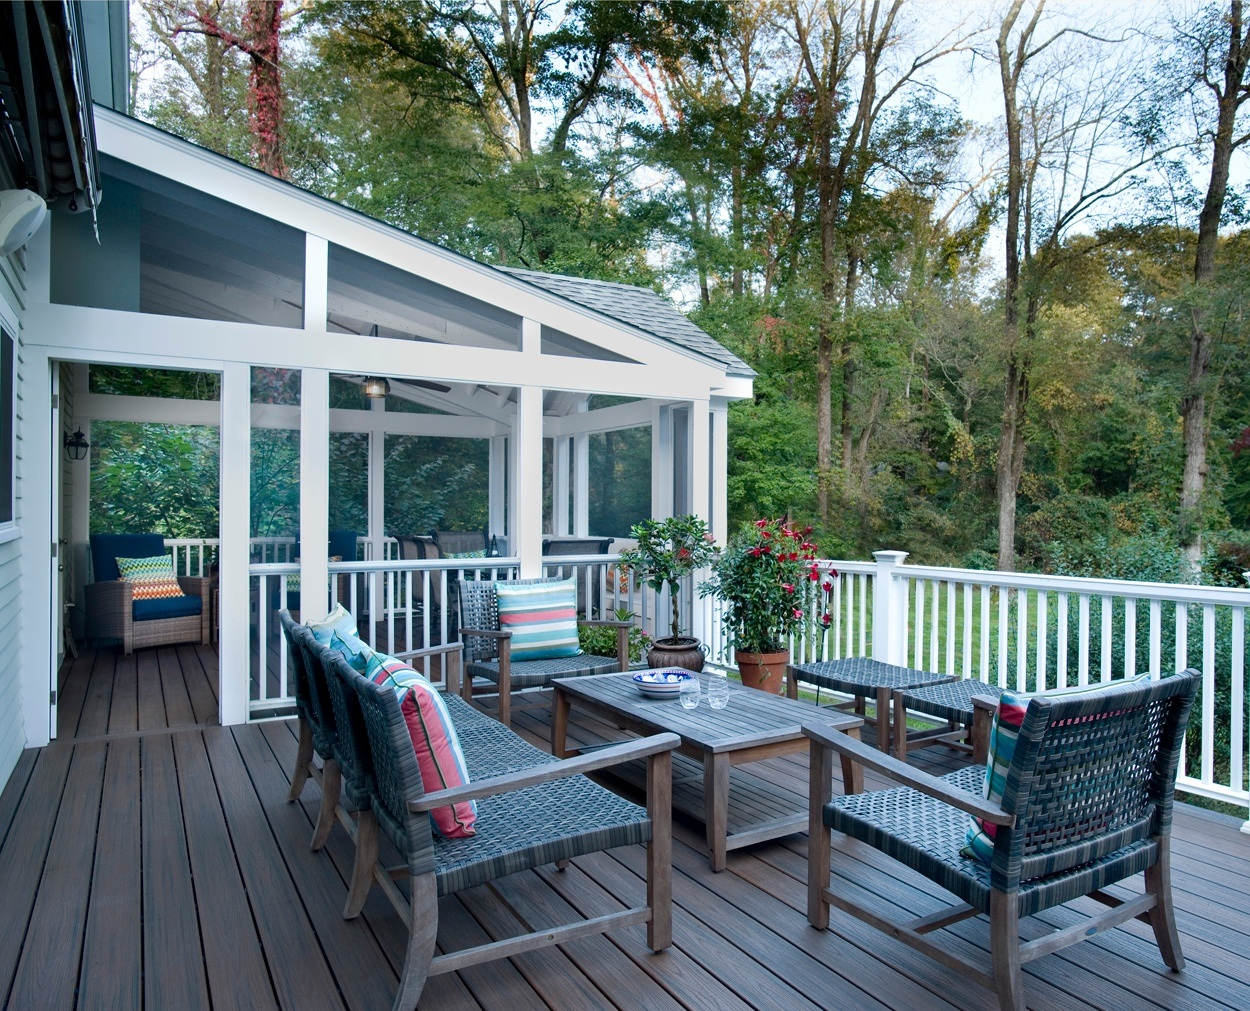 Colorful cushions add detail to outdoor furniture on a Trex deck.